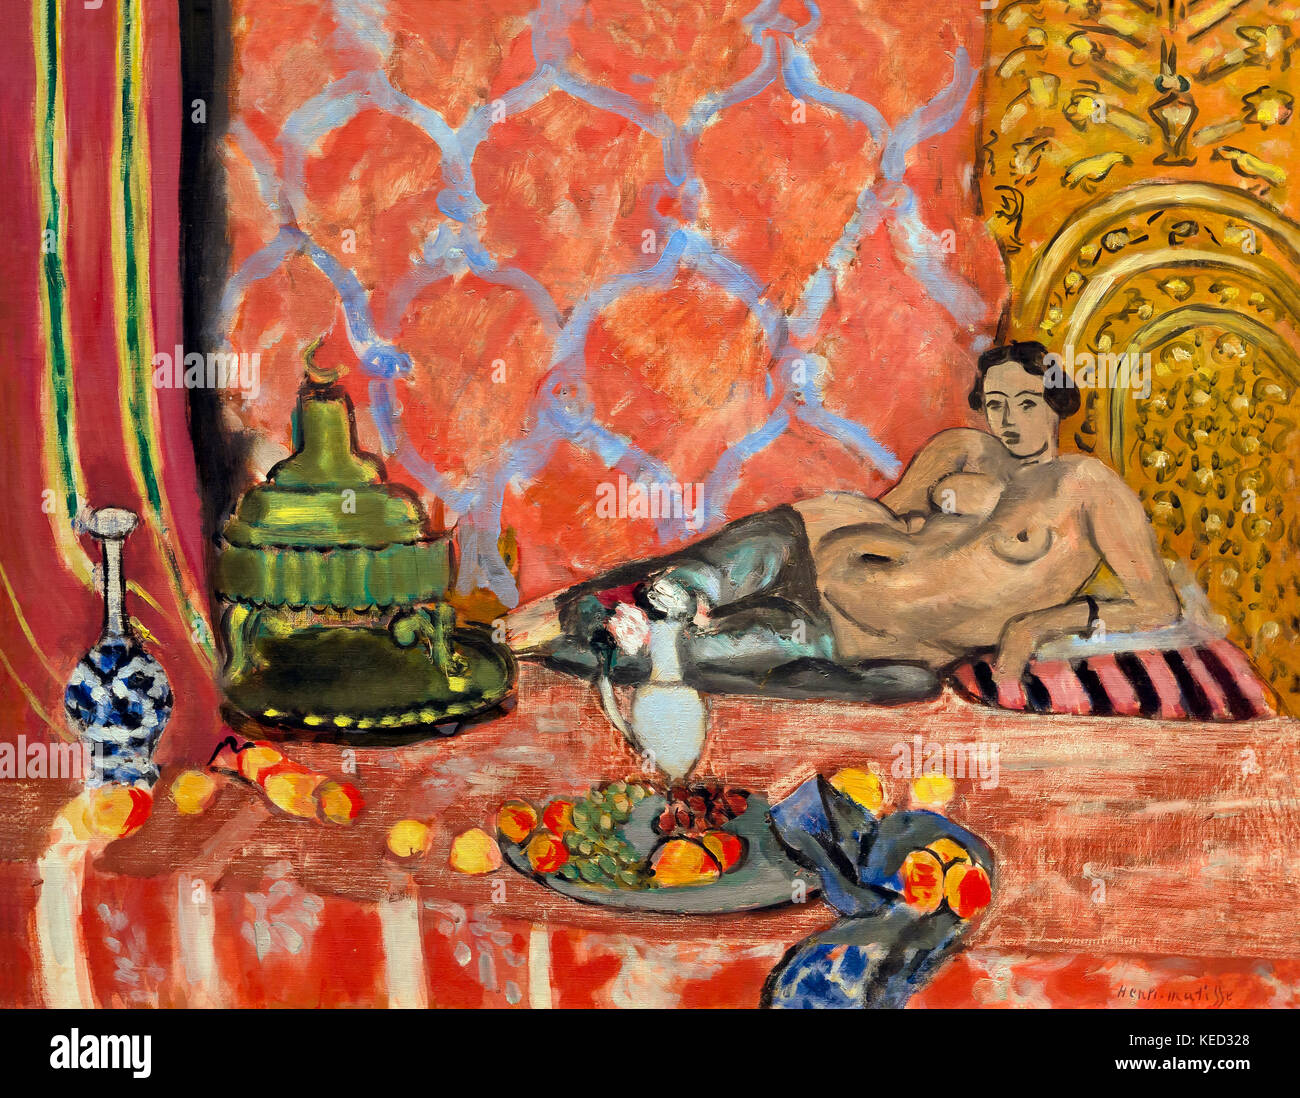 Odalisque with Gray Trousers, Henri Matisse, 1927, Metropolitan Museum of Art, Manhattan, New York City, USA, North - Stock Image